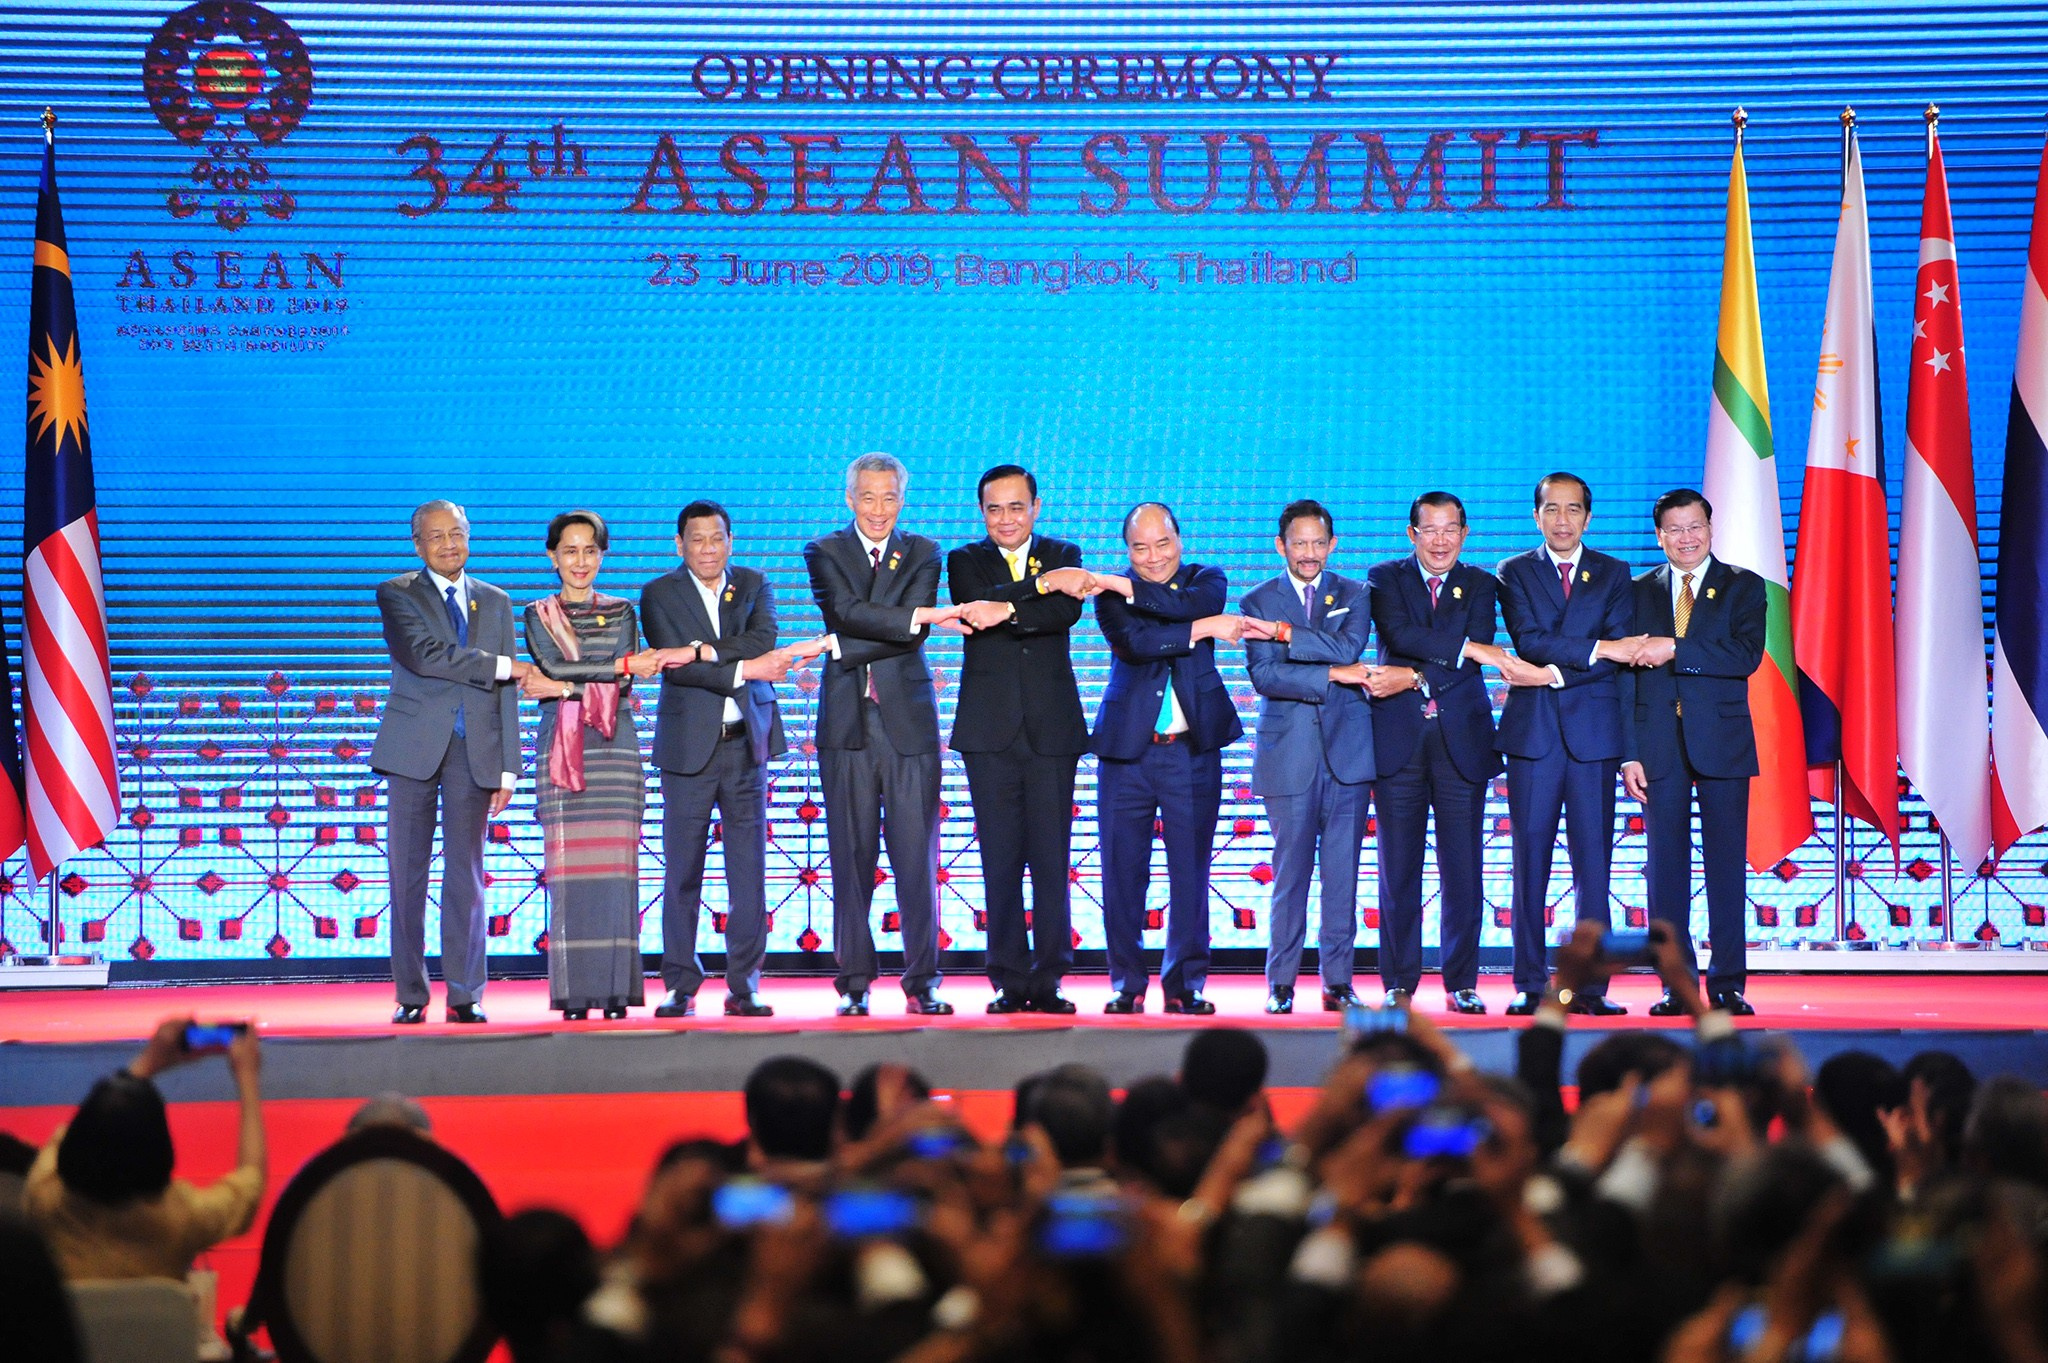 Asean leaders call for restraint in disputed South China Sea, as US-China trade war rages on